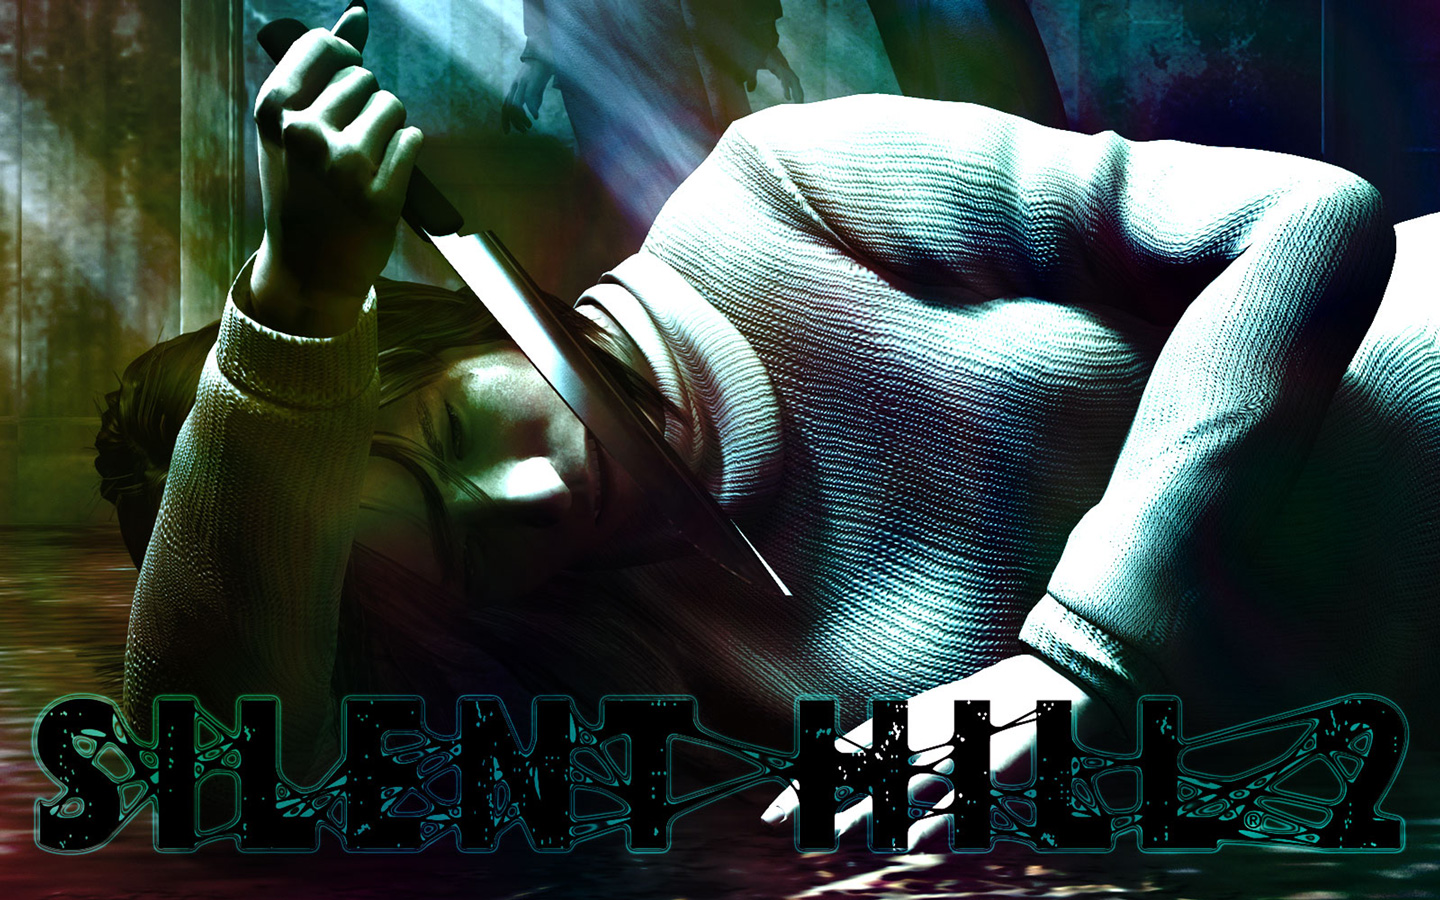 Free Silent Hill 2 Wallpaper in 1440x900